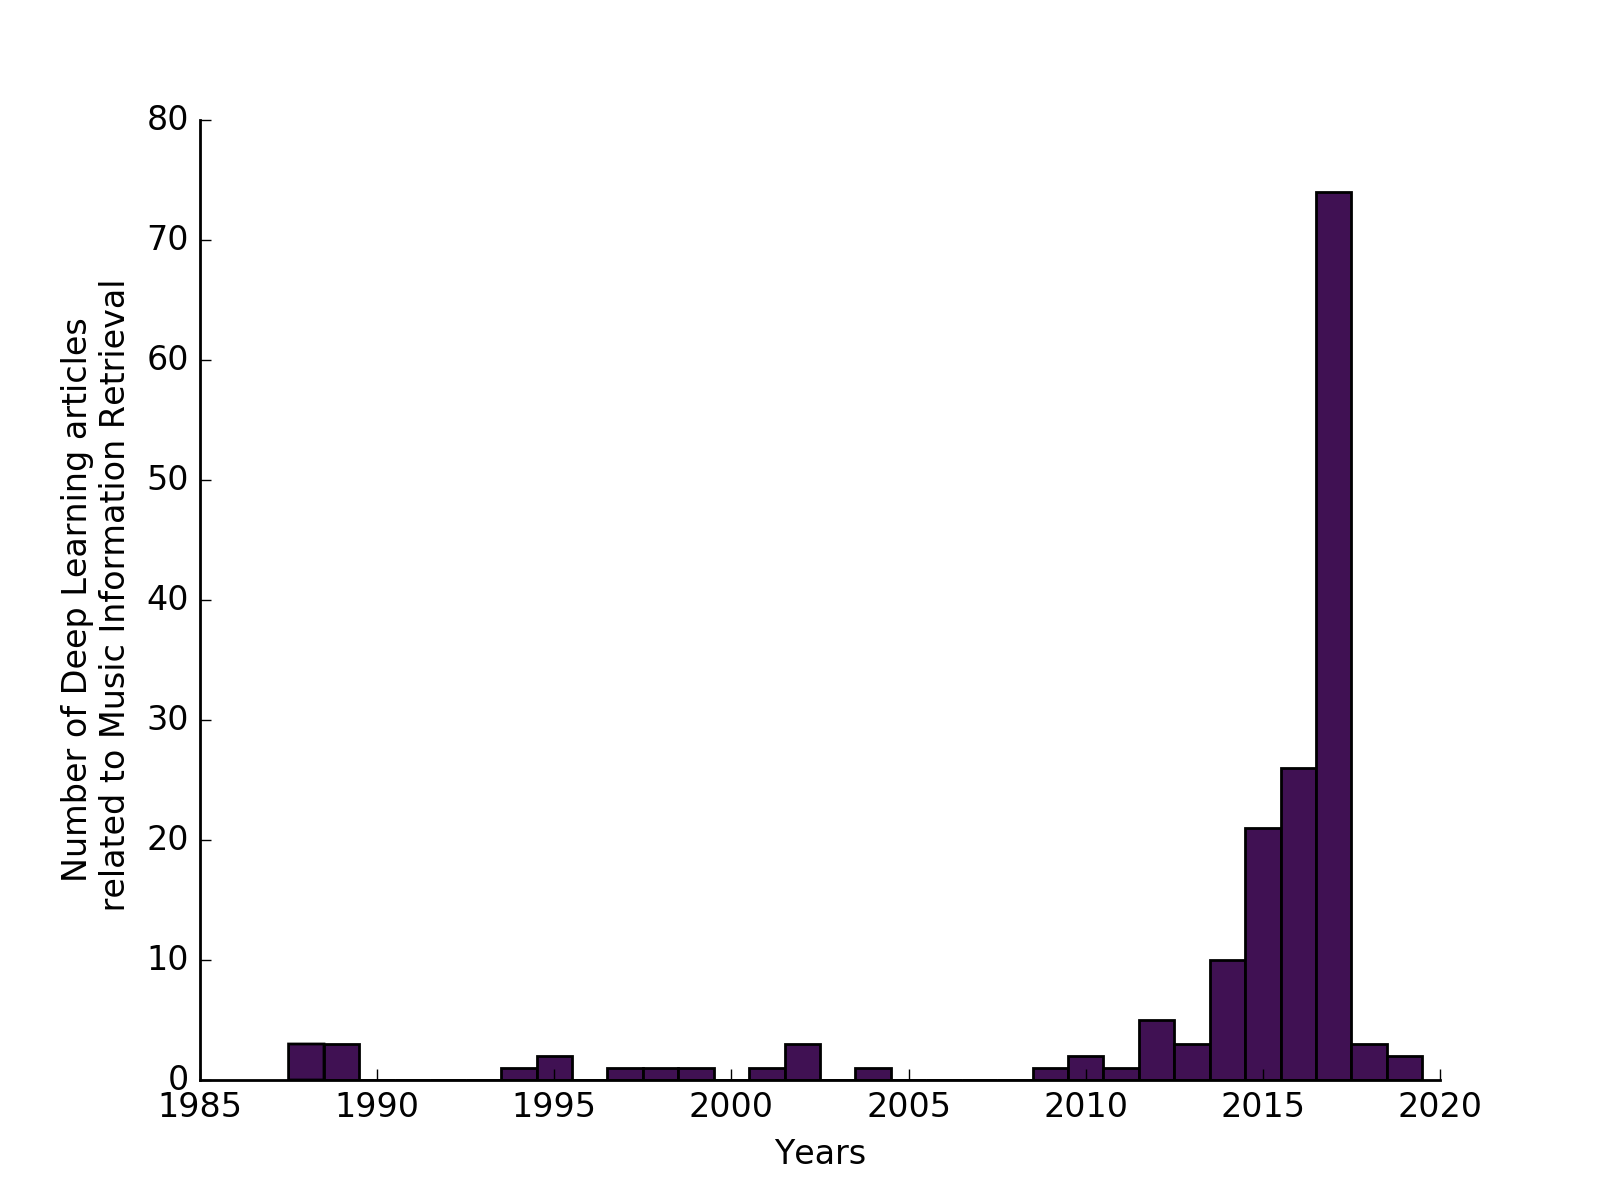 Number of articles per year